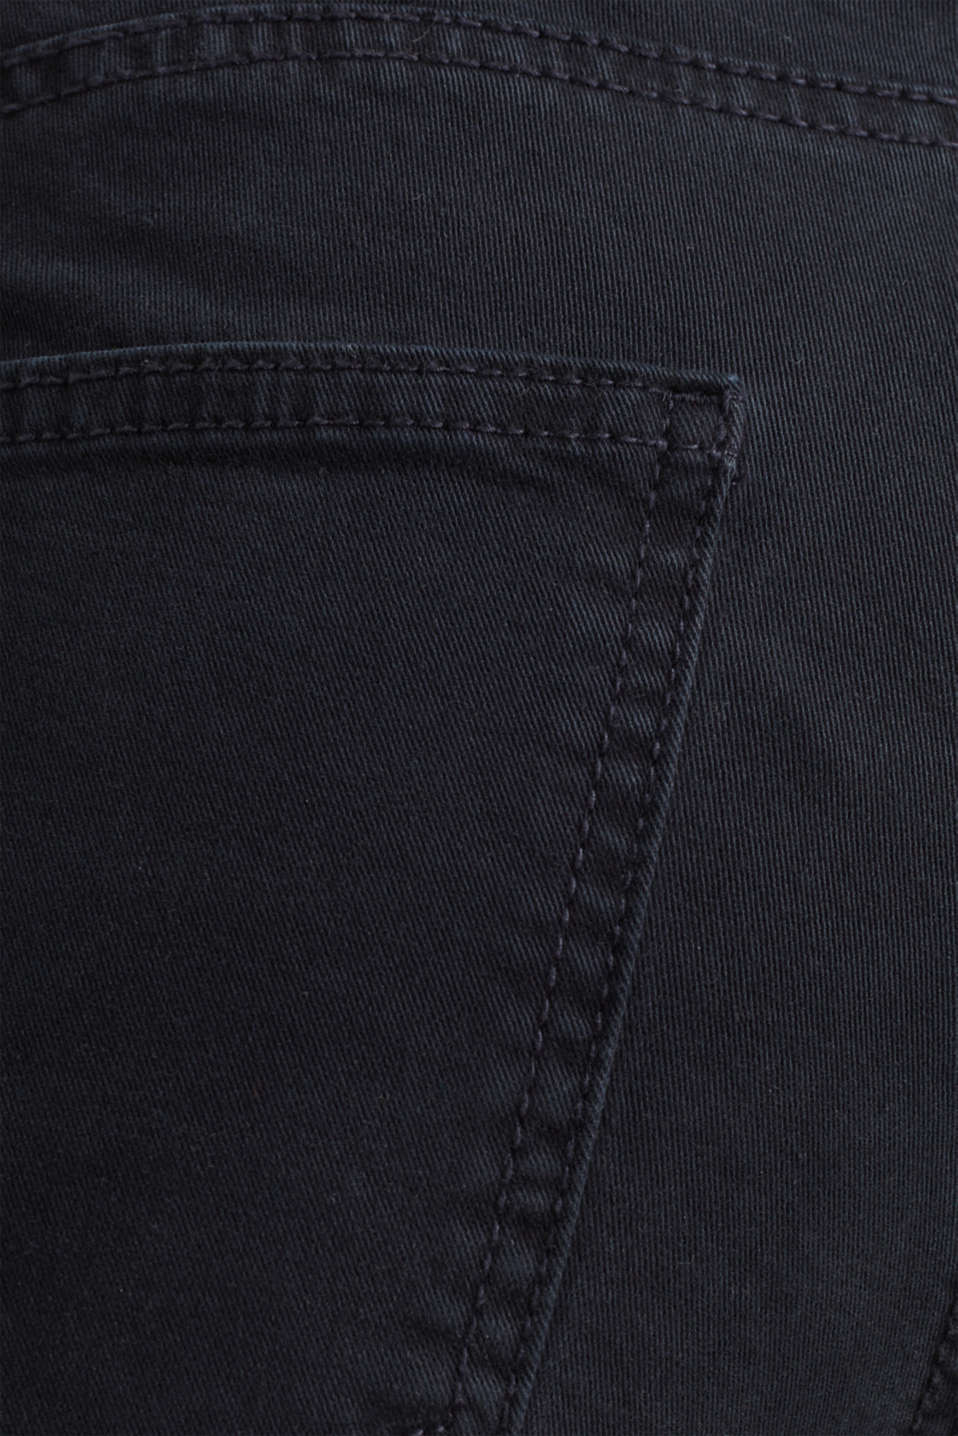 Washed-effect stretch trousers, NAVY, detail image number 4